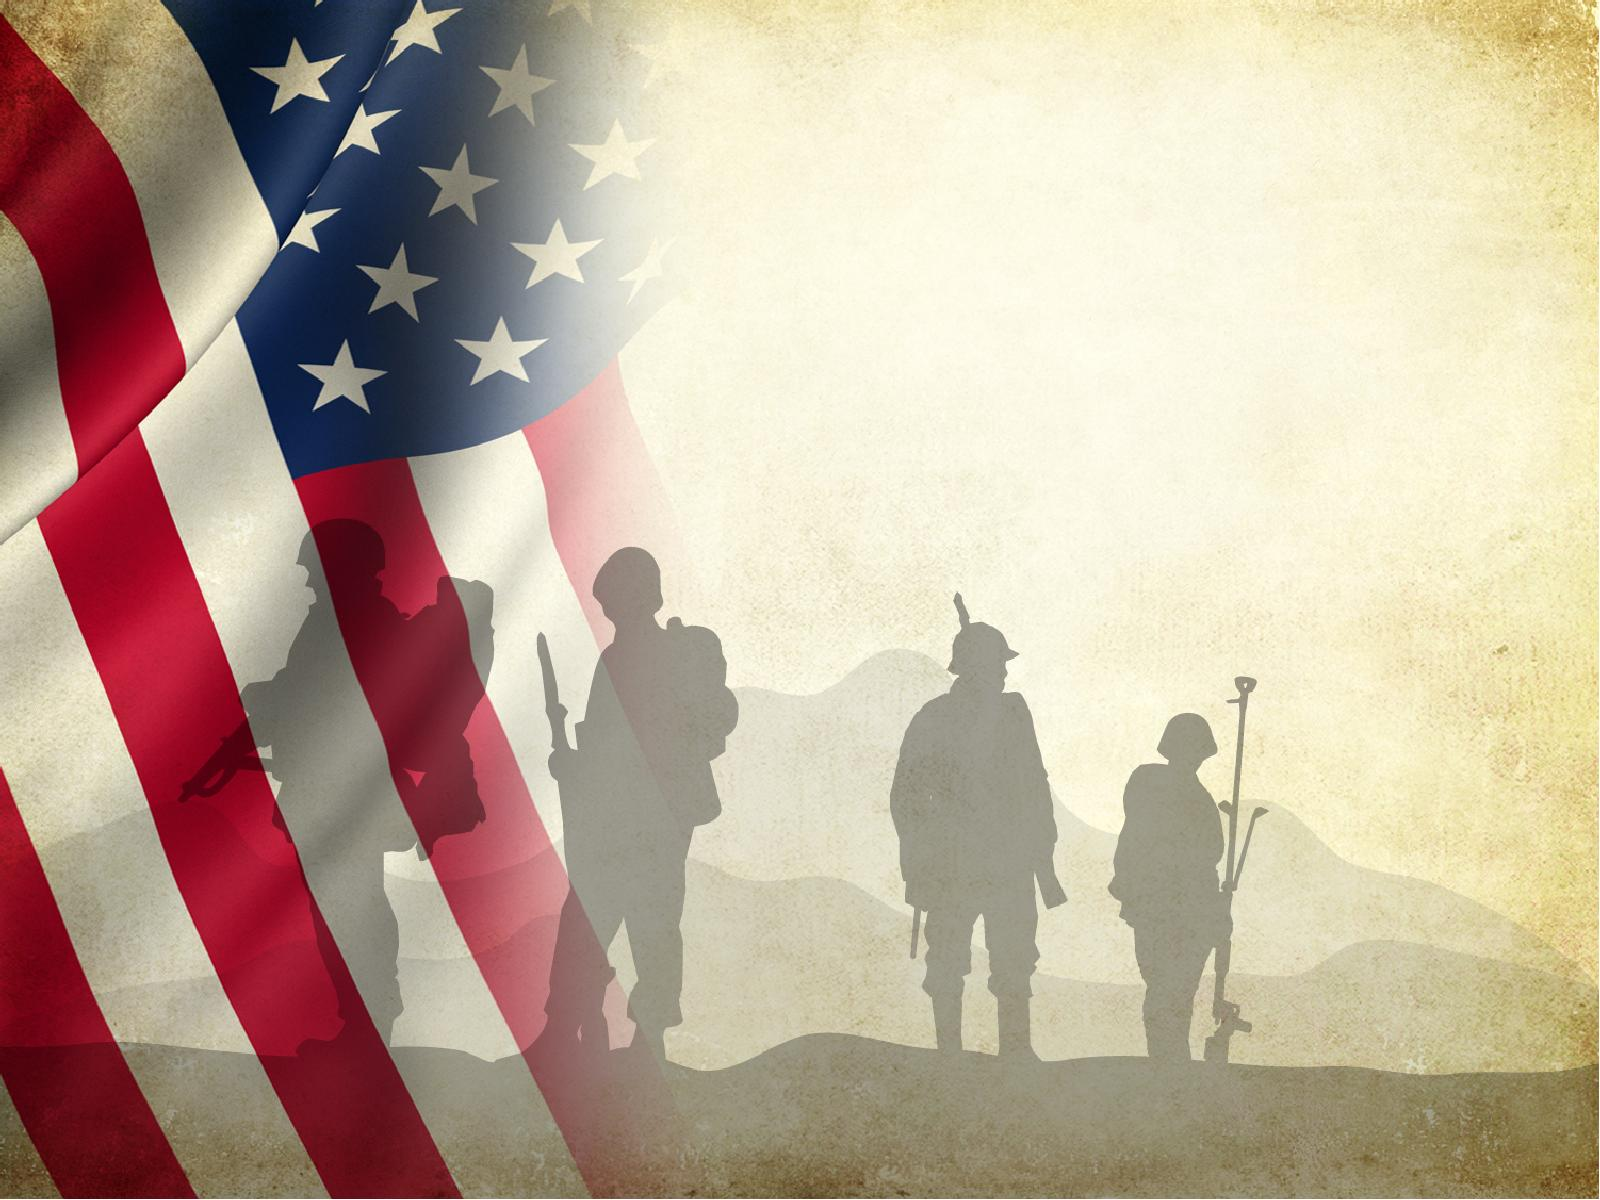 Elevate Marketing expresses thankfulness to veterans